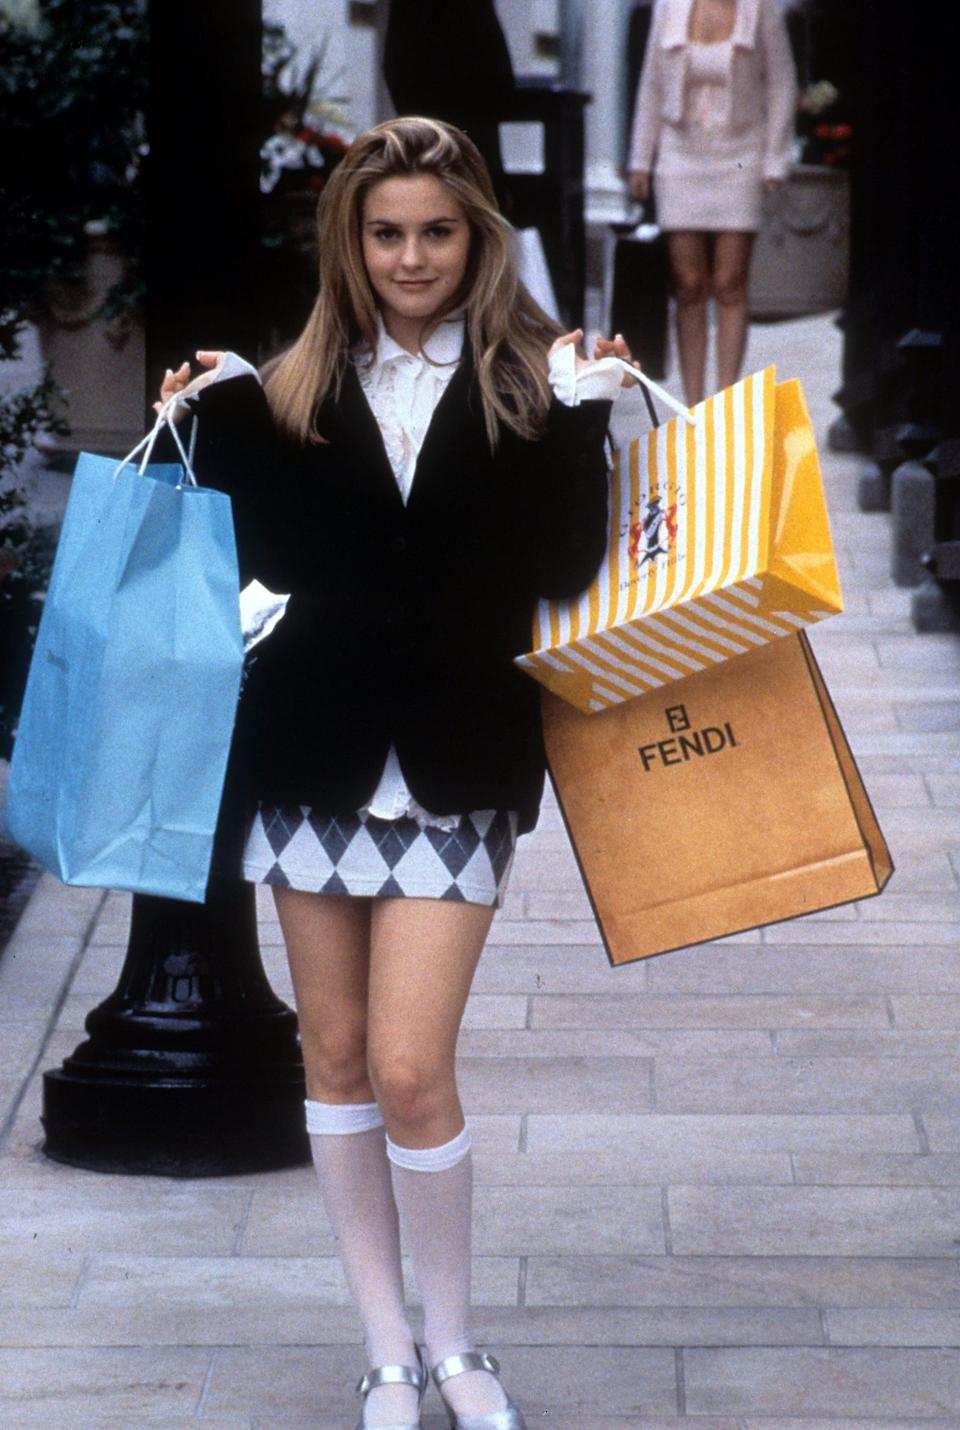 """<p><a href=""""https://www.popsugar.com/fashion/alicia-silverstone-talks-about-clueless-looks-video-47733872"""" class=""""link rapid-noclick-resp"""" rel=""""nofollow noopener"""" target=""""_blank"""" data-ylk=""""slk:The Clueless star's"""">The <strong>Clueless</strong> star's</a> black blazer jacket, plaid skirt, and high white socks still has us totally buggin' decades later. </p>"""